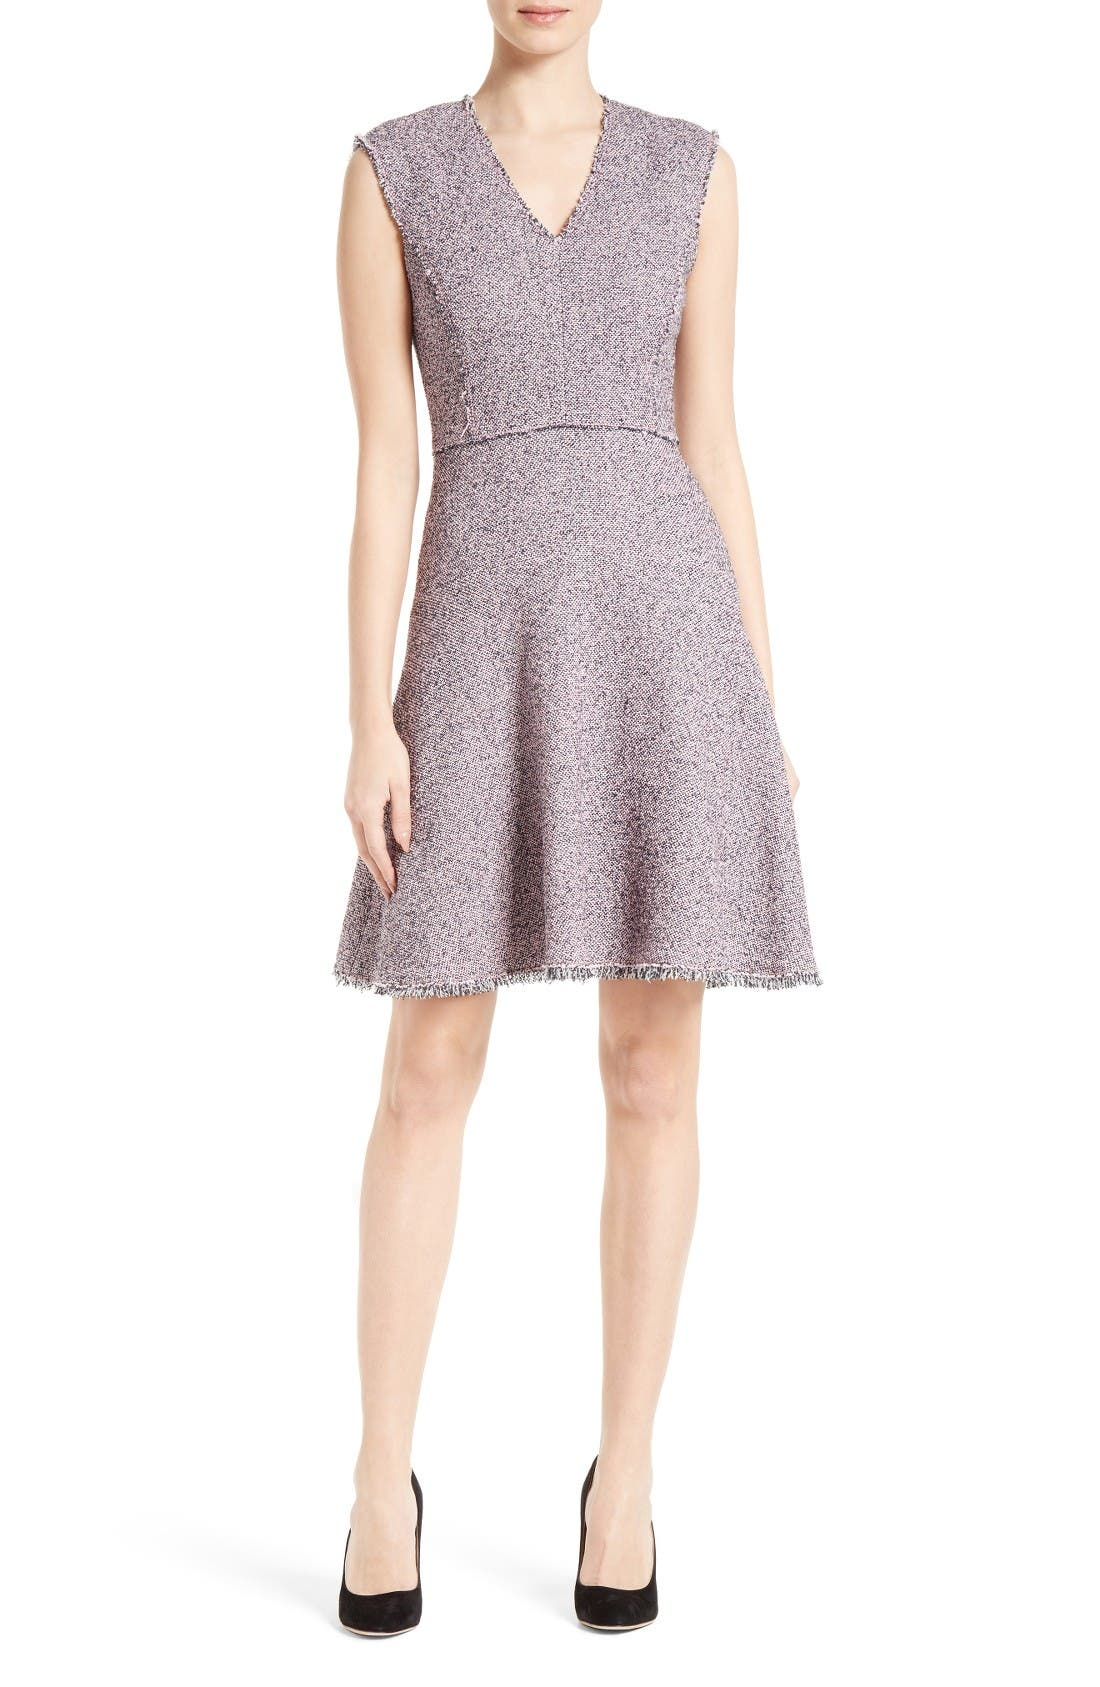 Alternate Image 1 Selected - Rebecca Taylor Stretch Tweed Fit & Flare Dress